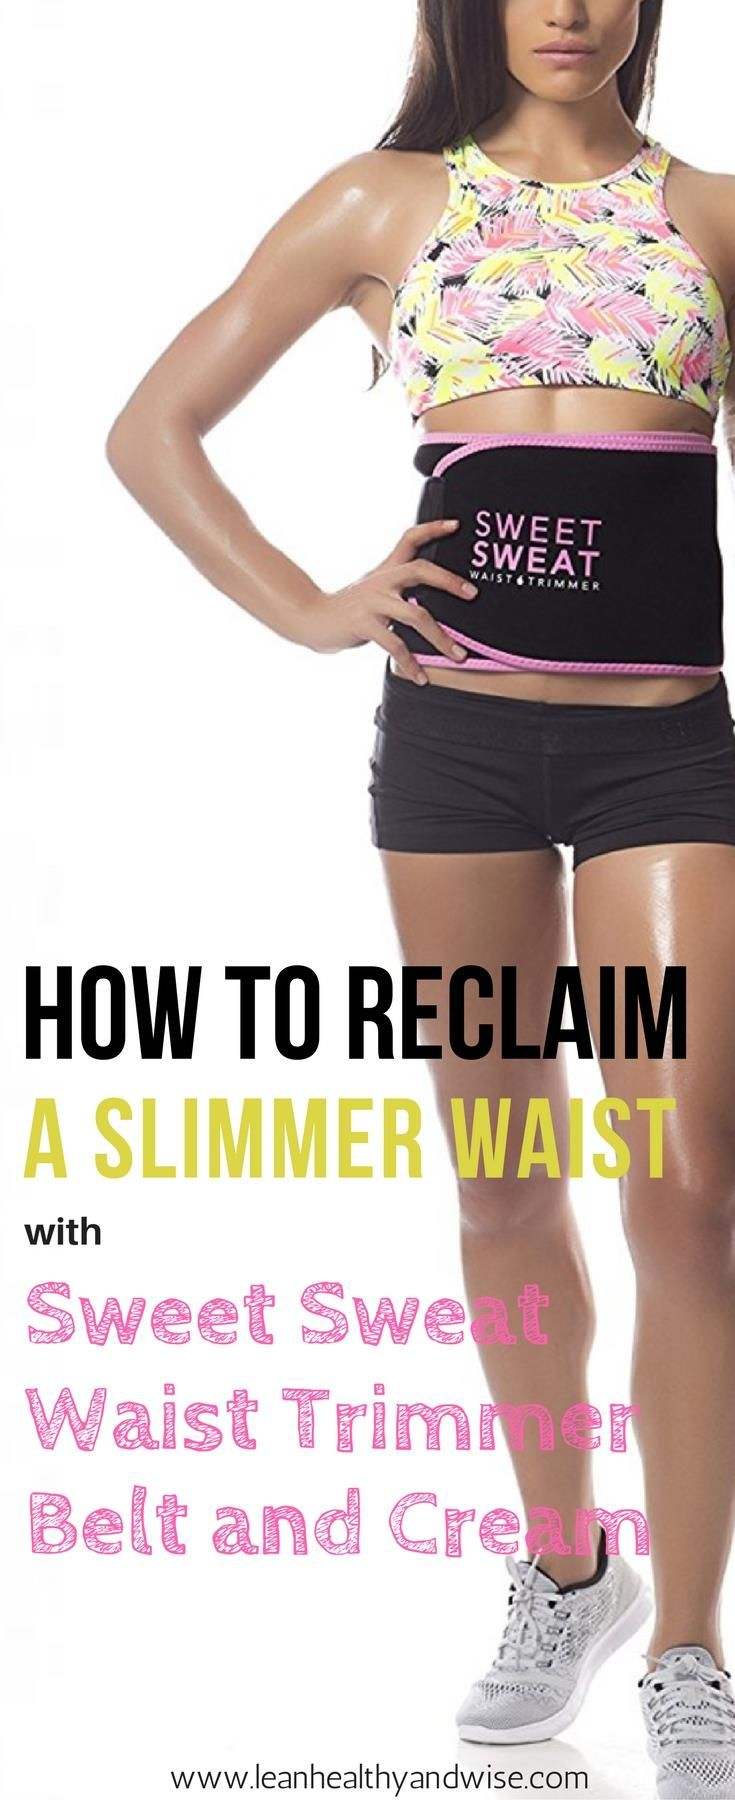 6245778522 Check out the amazing Sweet Sweat workout enhancer and weight loss  accelerating system. Reclaim a slimmer waist with waist trimmer belt and  gel. via   ...